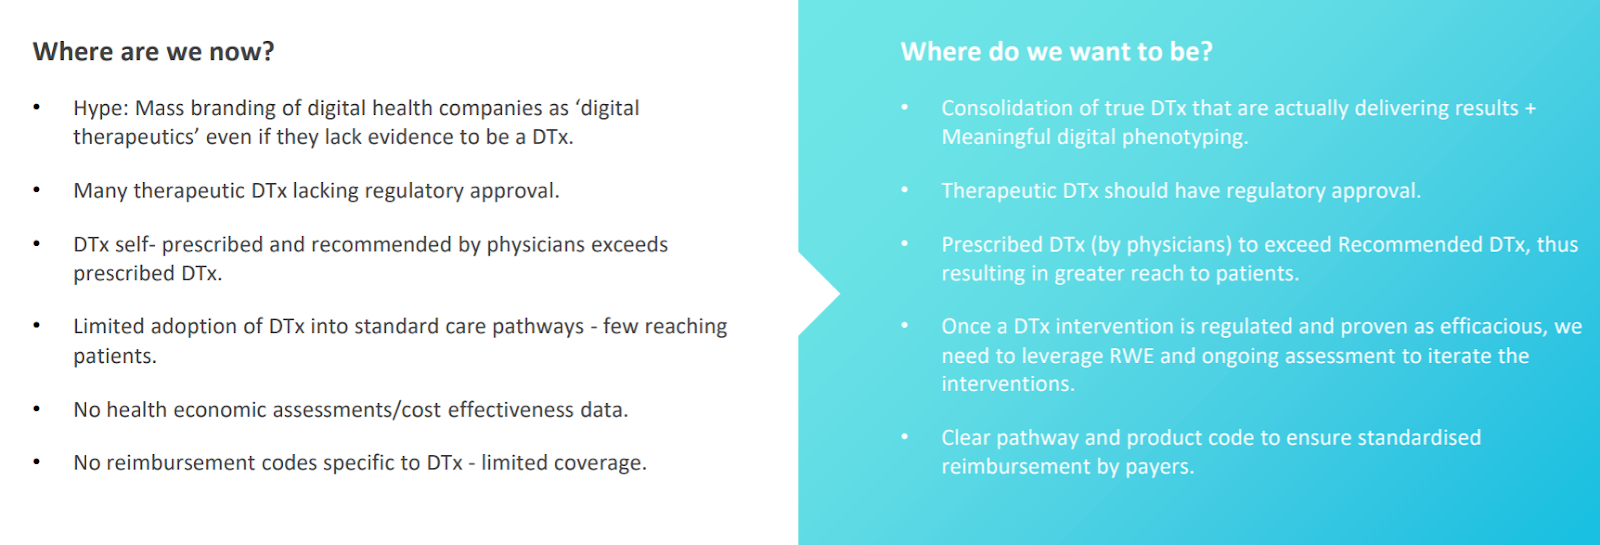 8 Digital Health Trends To Watch In 2019